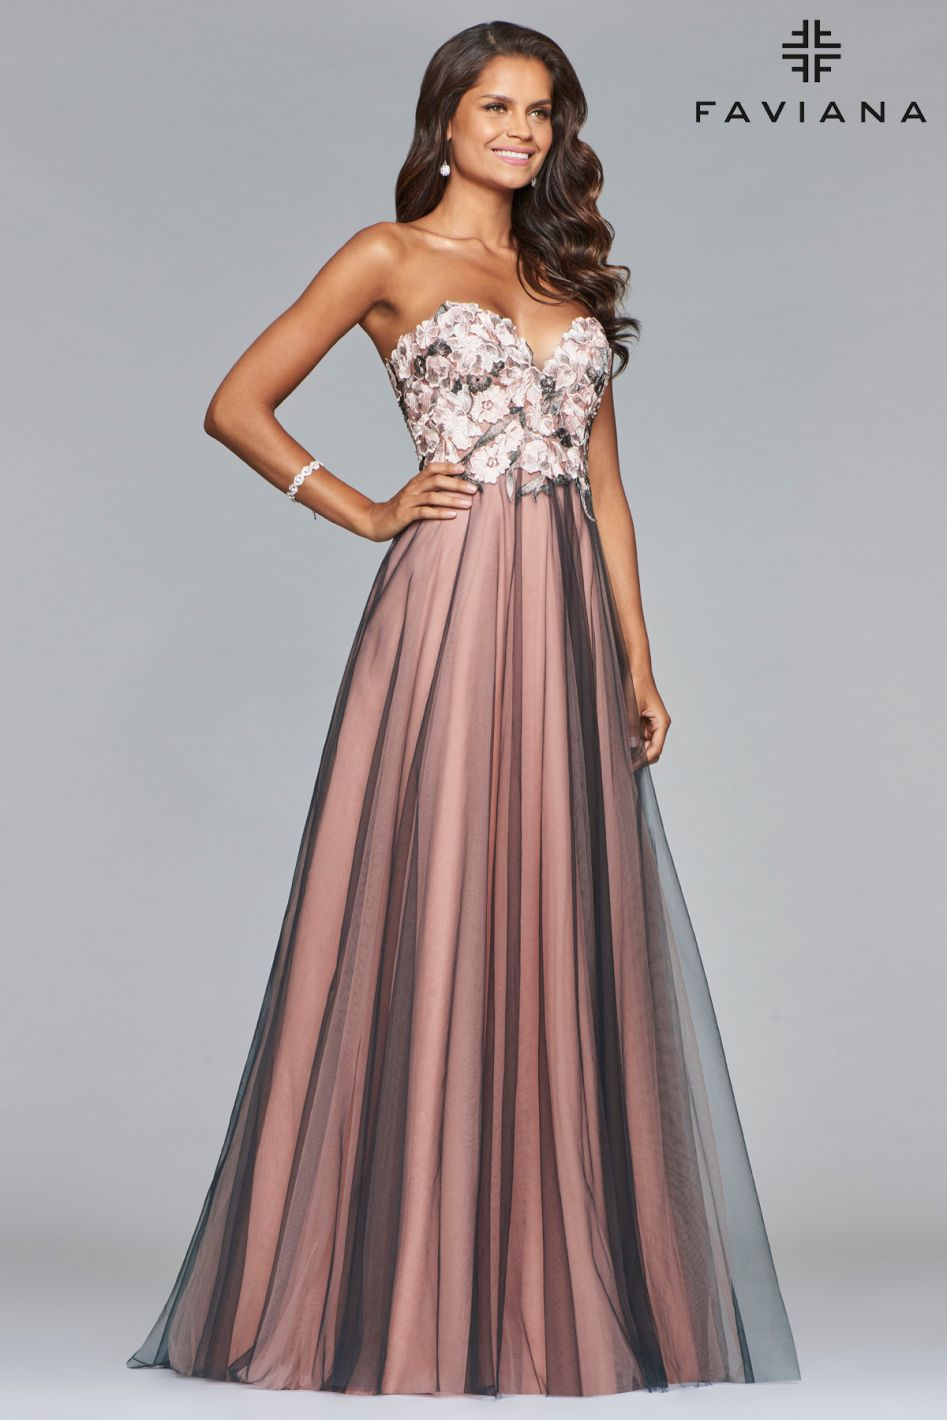 Faviana Size 6 Gray and Blush Floral Embroidered Gown